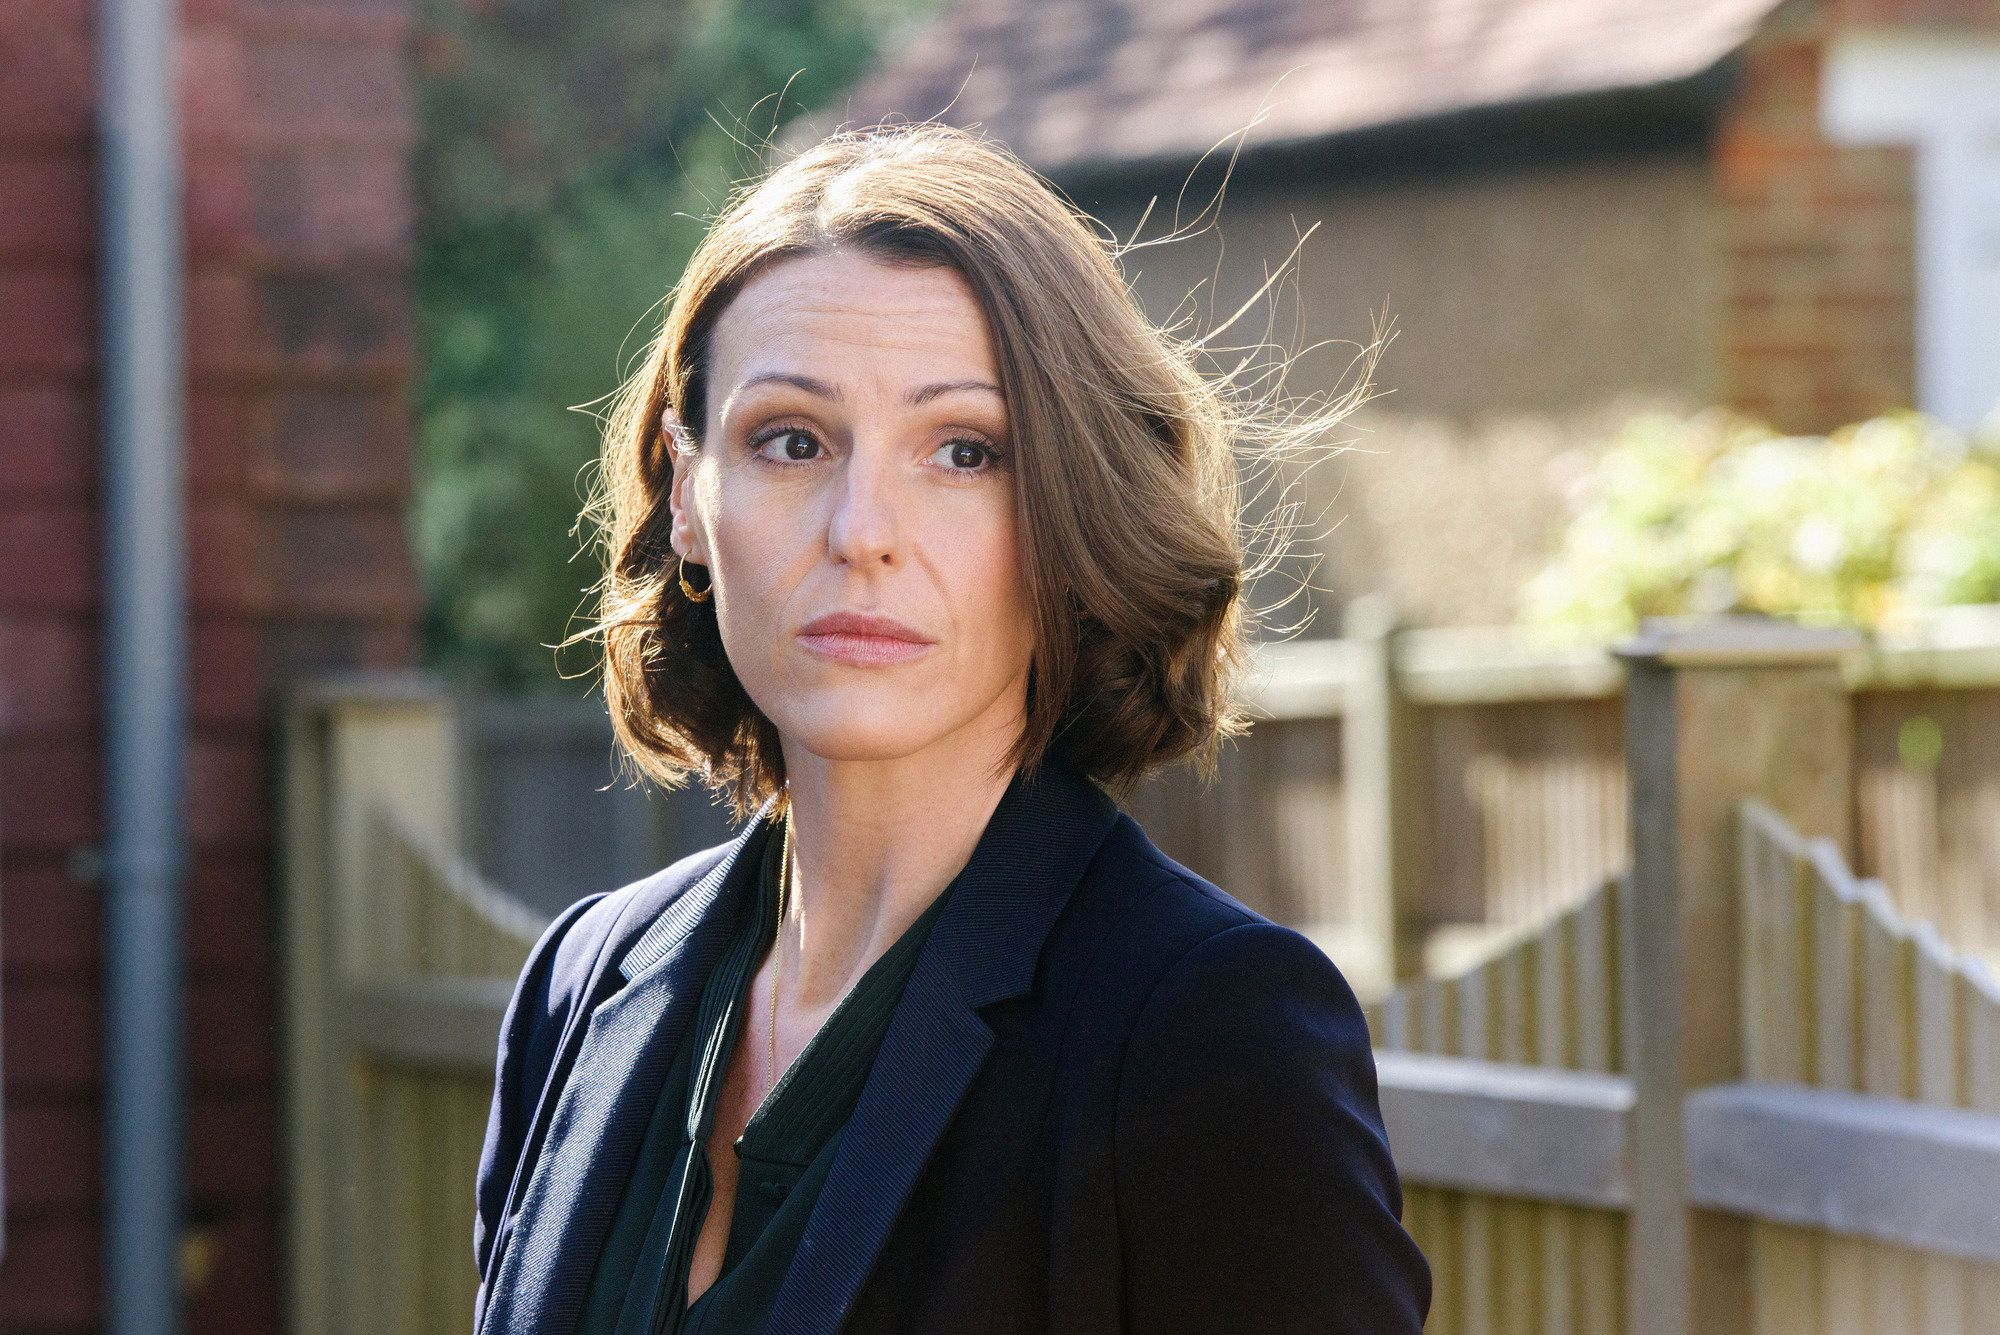 ALL The Questions We Need Answers To In The 'Doctor Foster' Series